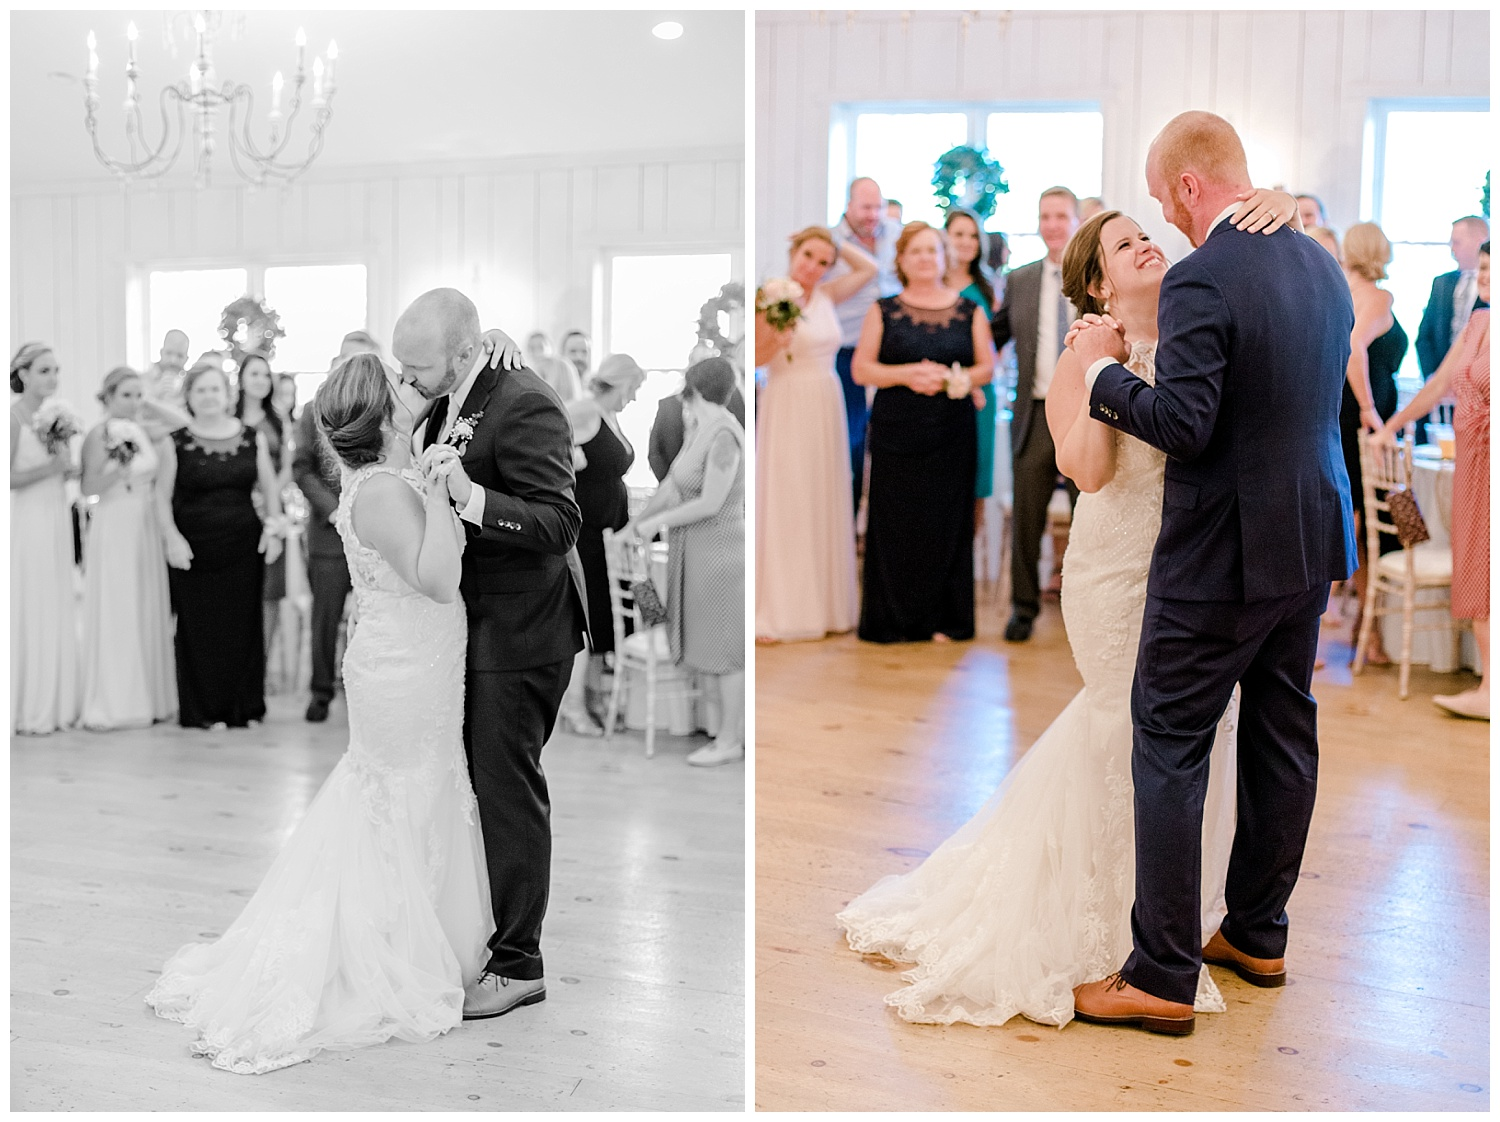 Navy and Blush pink inspired summertime whitewoods wedding in Northeastern Pennsylvania NEPA wapwallopen wedding venue by  PA based wedding and lifestyle photographer Lytle photography_0045.jpg